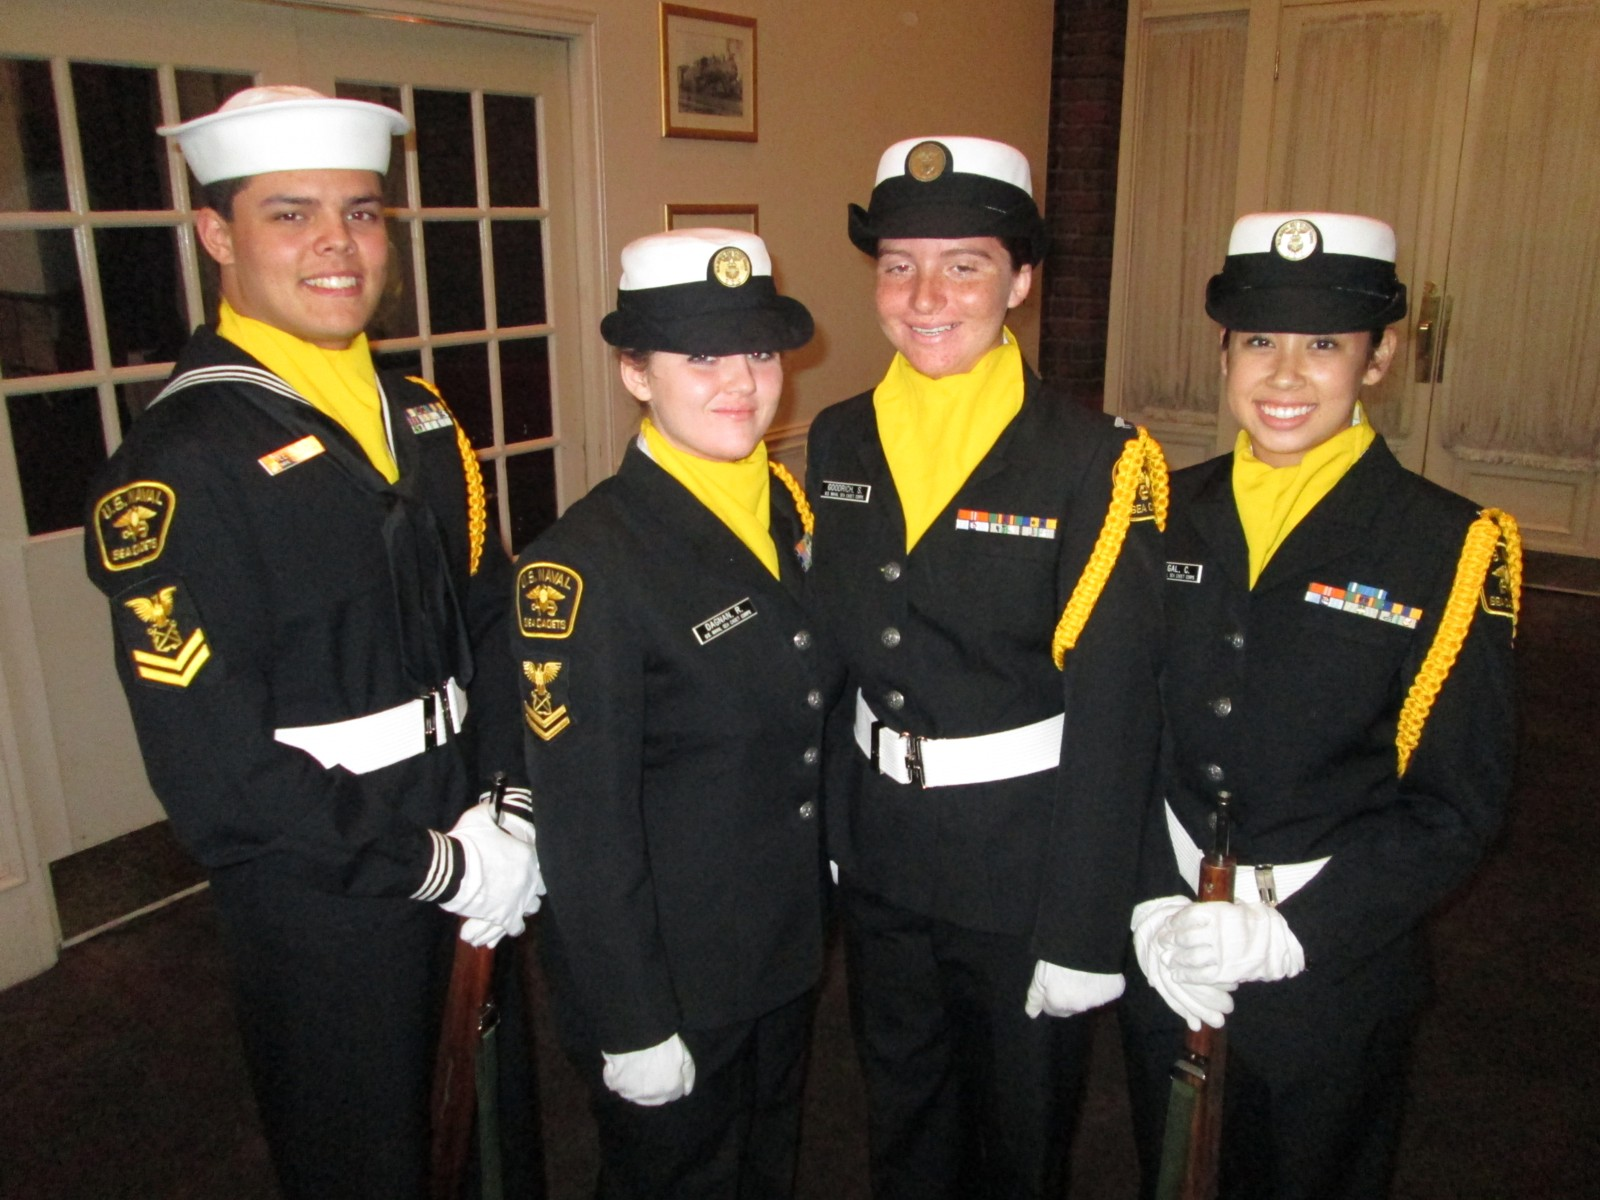 IMG_7096_Color_Guard_Riley_Teeter__Rachel_Dagnan__Sarah_Goodrich__Callie_Regal.JPG